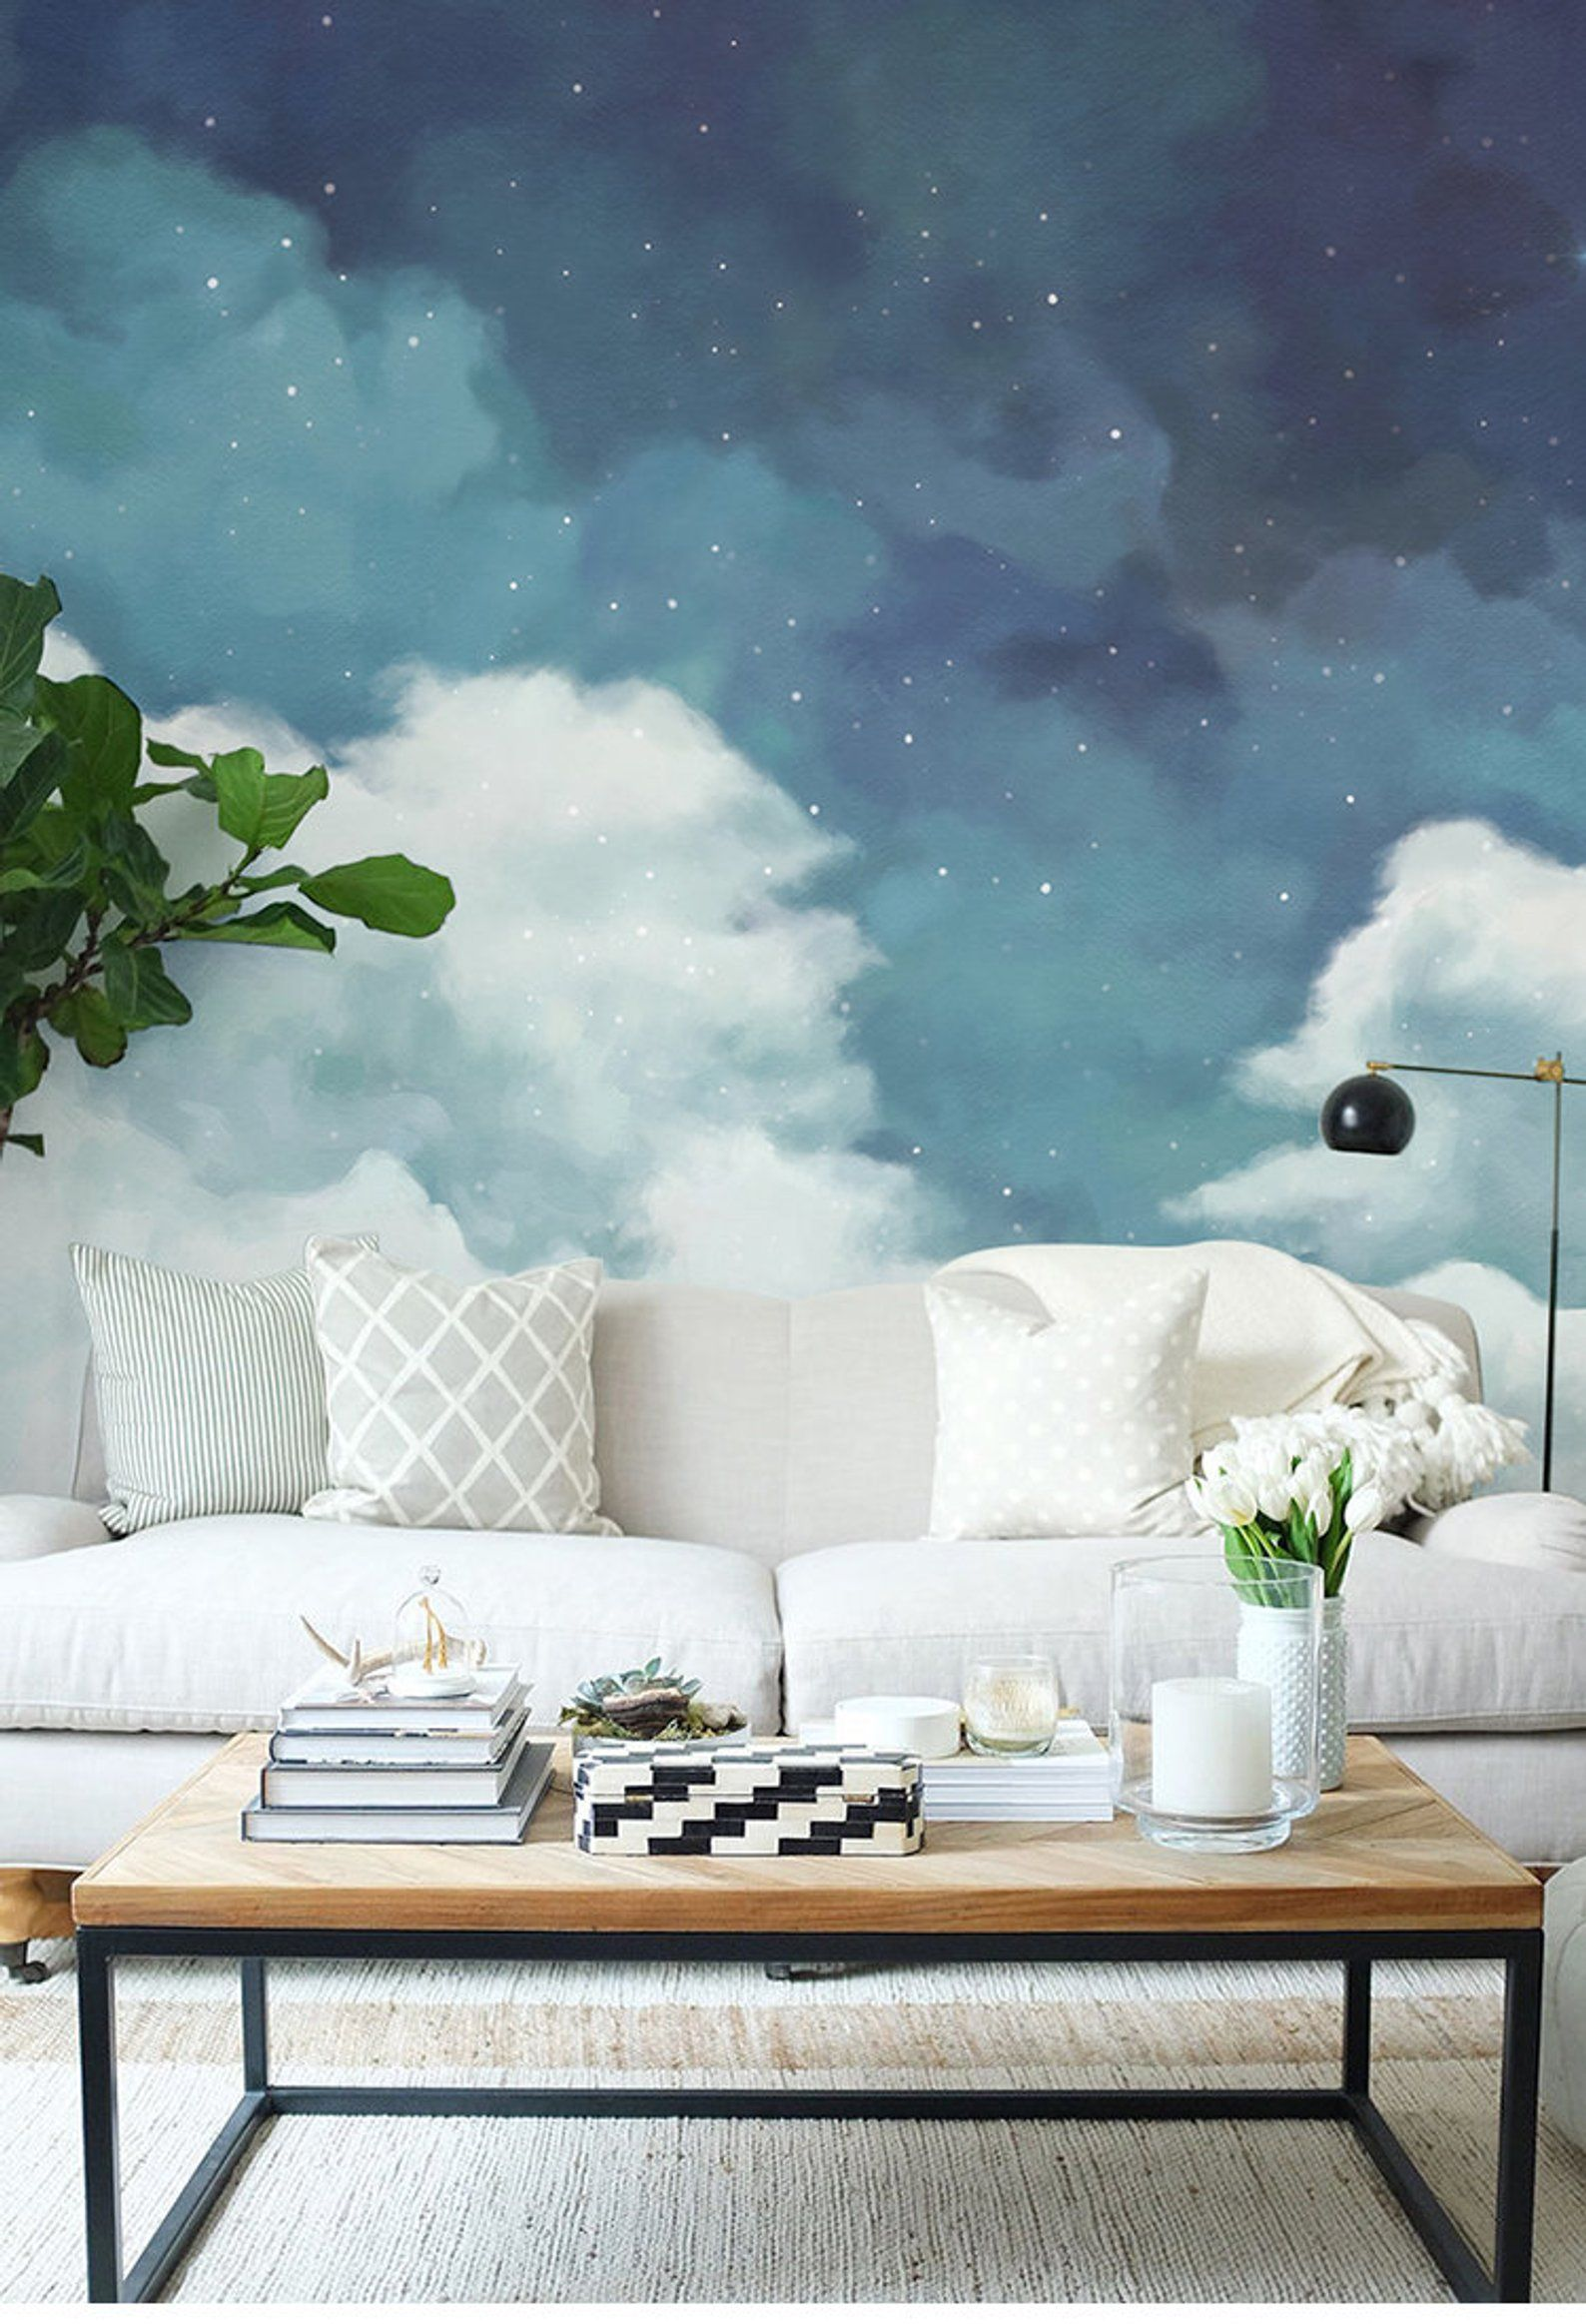 Fantastic starry sky wallpaper removable clouds wall mural